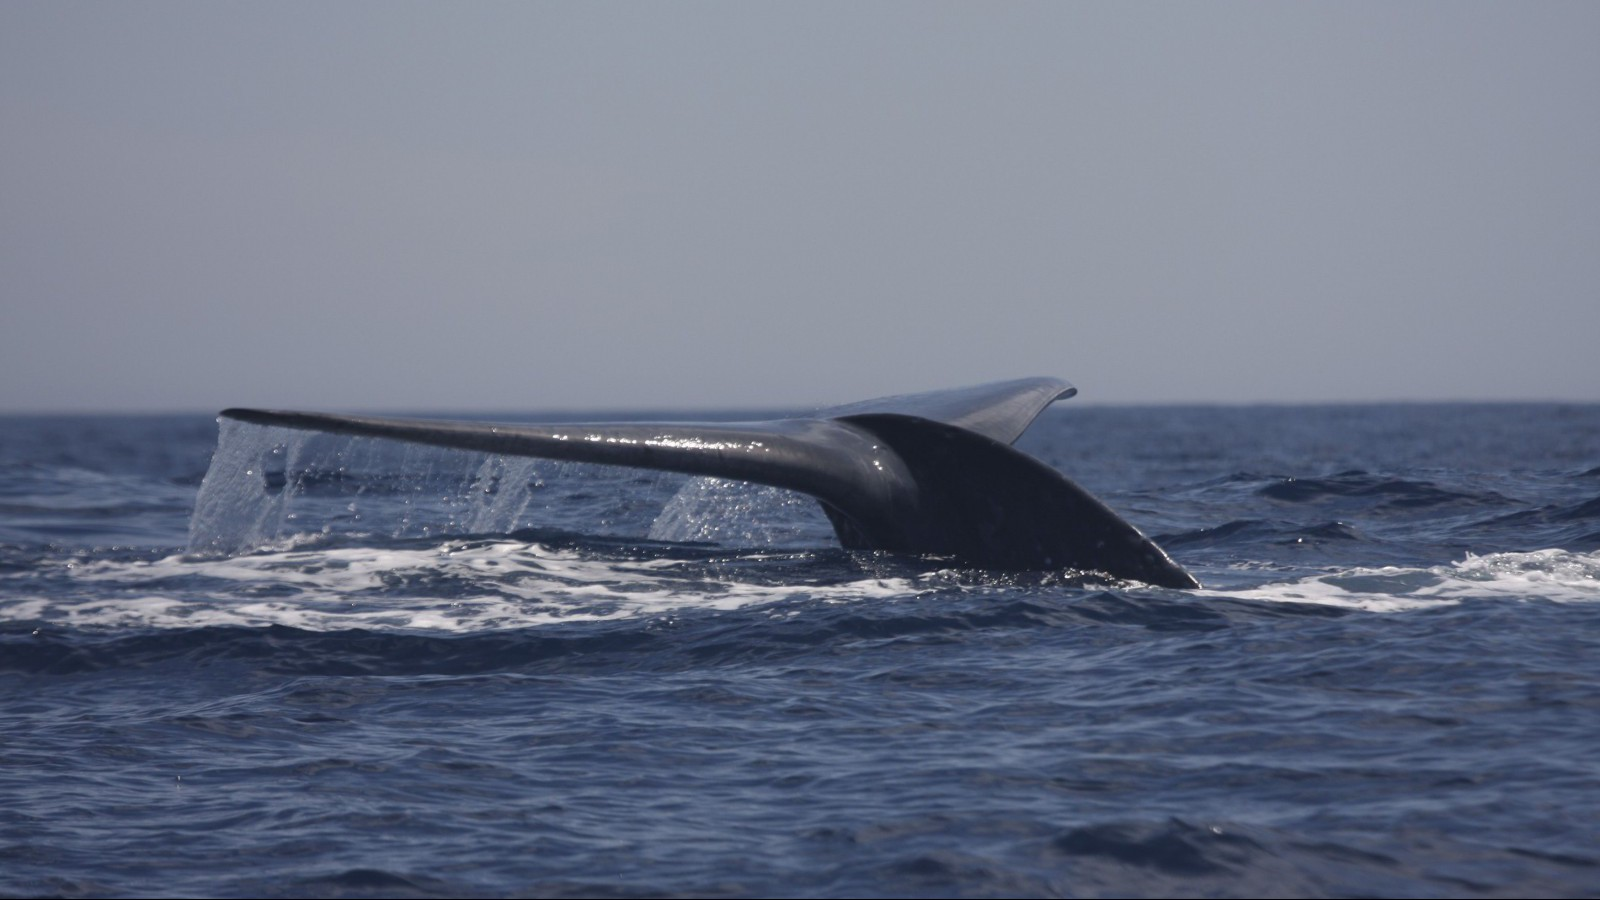 A blue whale surfaces in the Bass Strait waters off Australia January 16, 2012. Australian scientists are using military technology for locating submarines to track rare blue whales hundreds of kilometres away by eavesdropping on their distinctive songs. Picture taken January 16, 2012. REUTERS/Australian Antarctic Division/Handout (AUSTRALIA - Tags: ANIMALS ENVIRONMENT SOCIETY) FOR EDITORIAL USE ONLY. NOT FOR SALE FOR MARKETING OR ADVERTISING CAMPAIGNS. THIS IMAGE HAS BEEN SUPPLIED BY A THIRD PARTY. IT IS DISTRIBUTED, EXACTLY AS RECEIVED BY REUTERS, AS A SERVICE TO CLIENTS - RTR38TFW